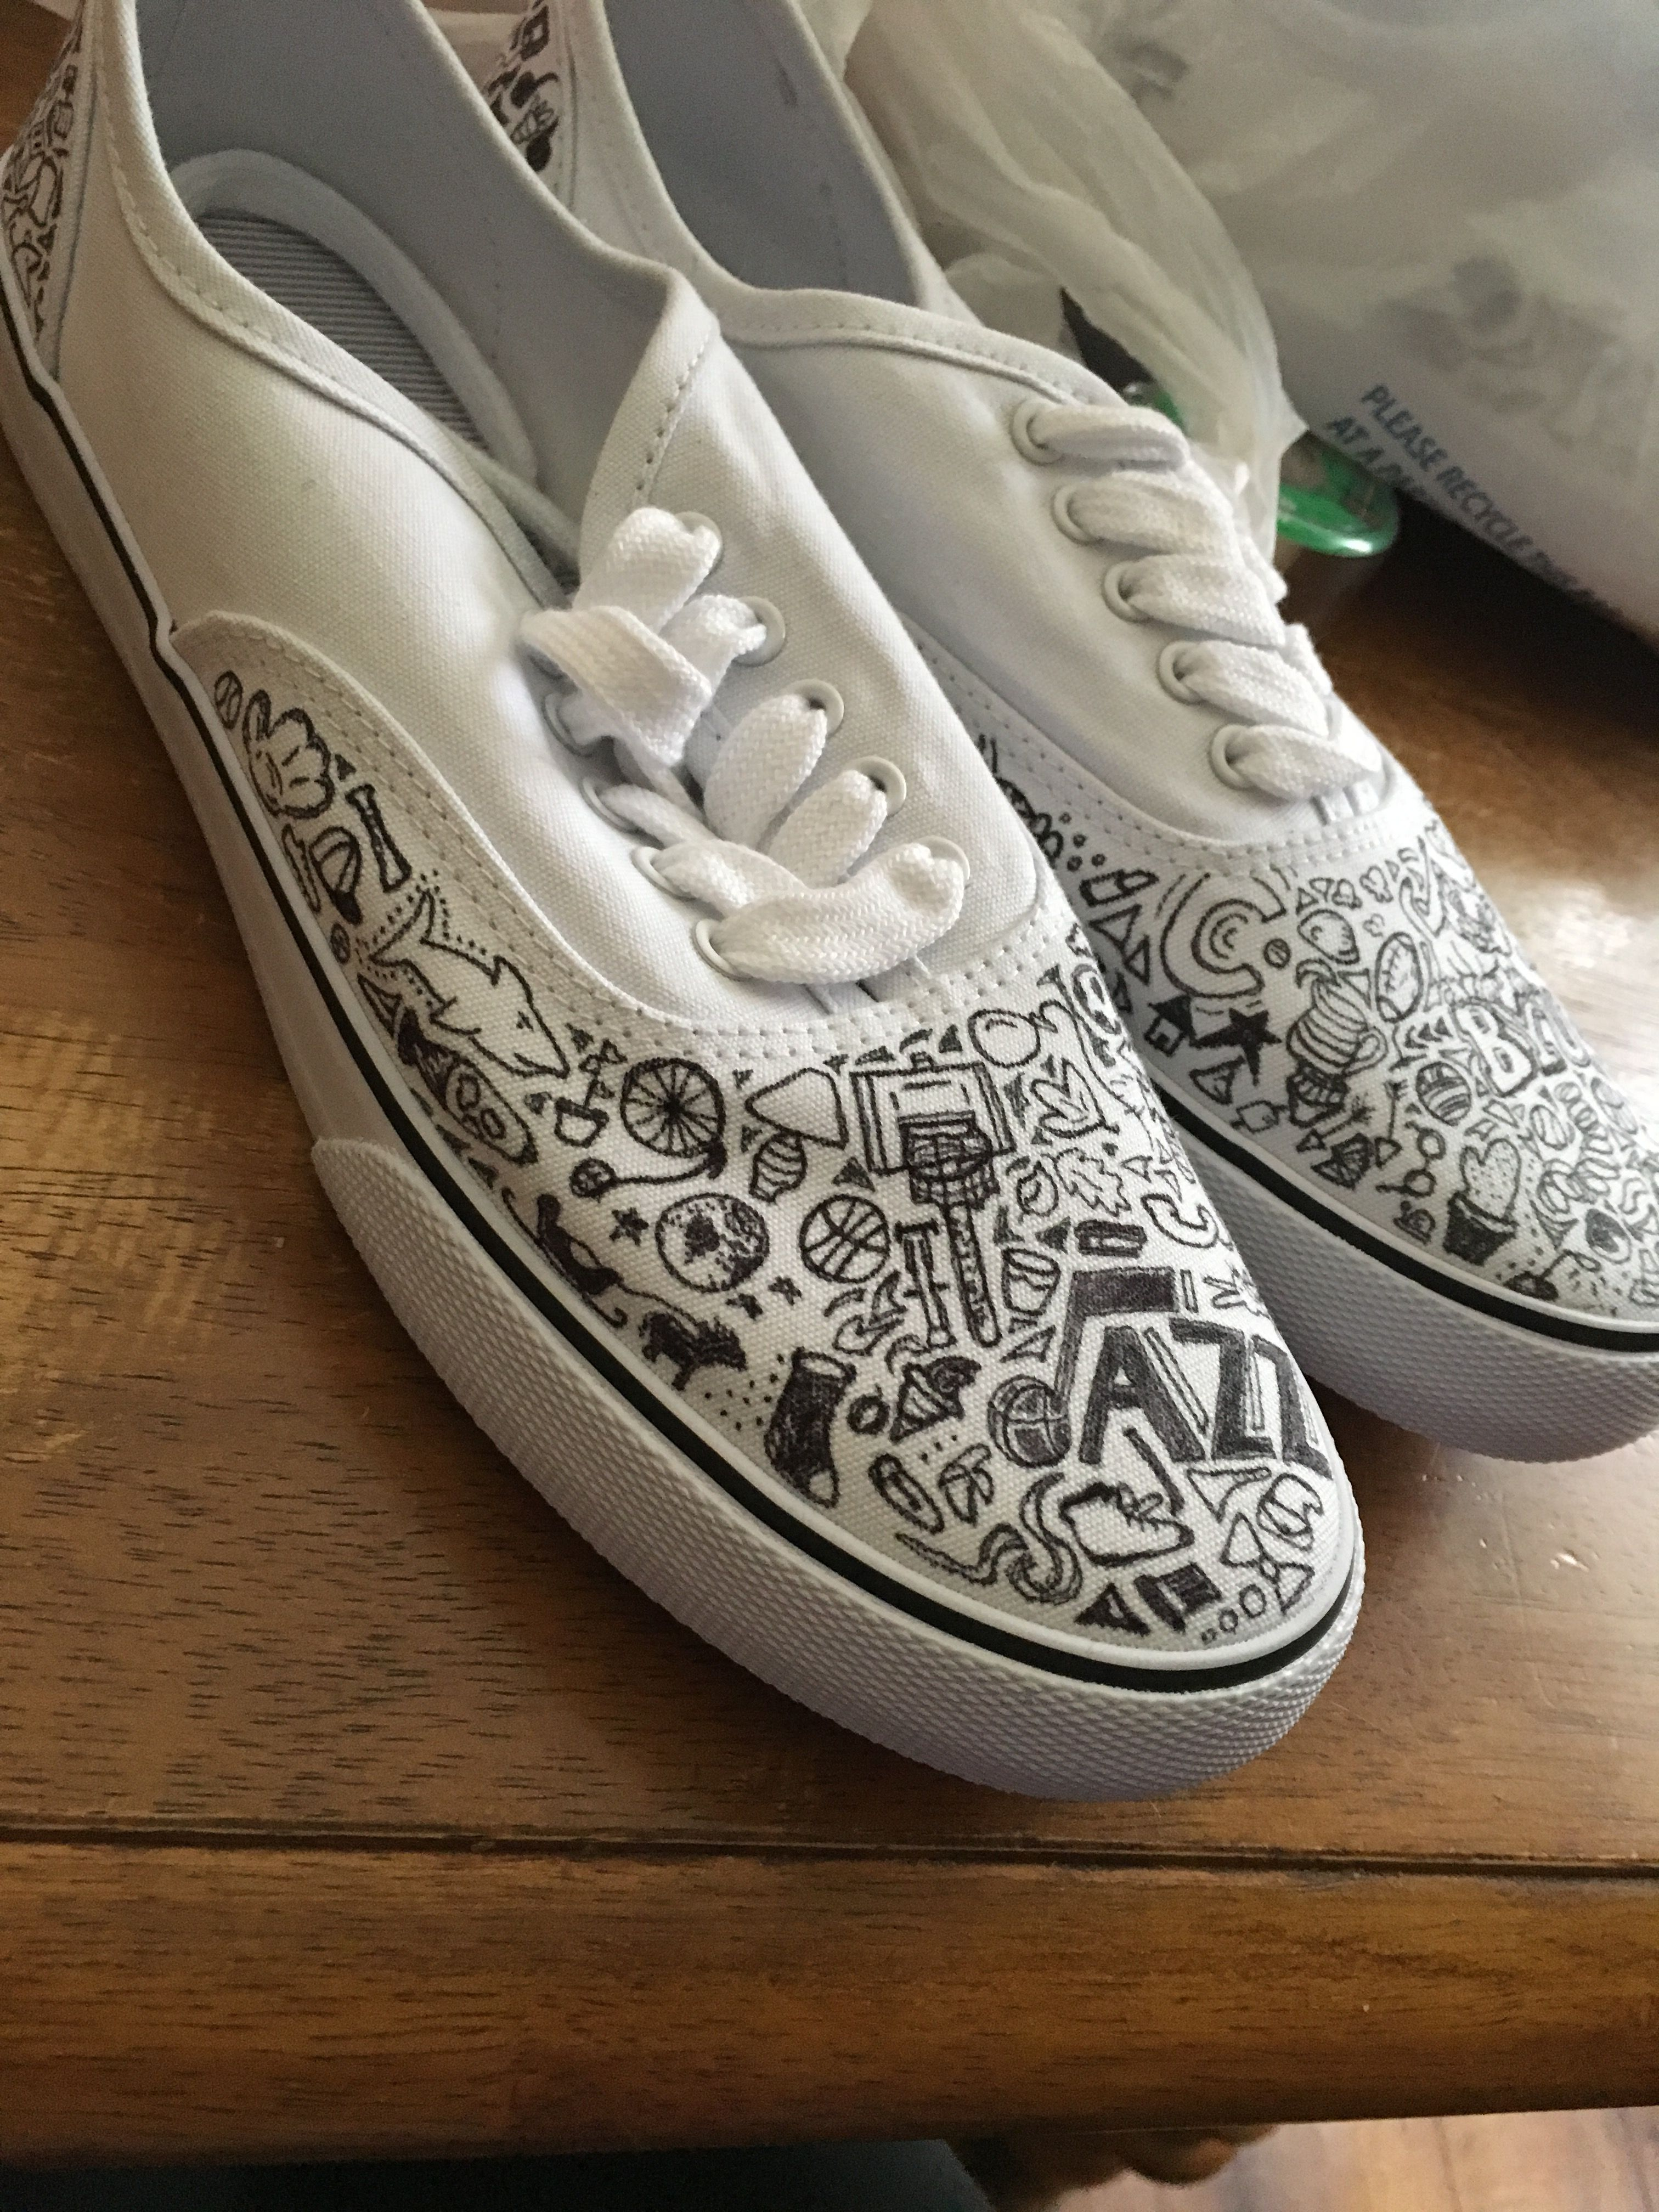 3a52be89b00bb Doodles on shoes 👠 | Art n such | Shoes, On shoes, Sneakers